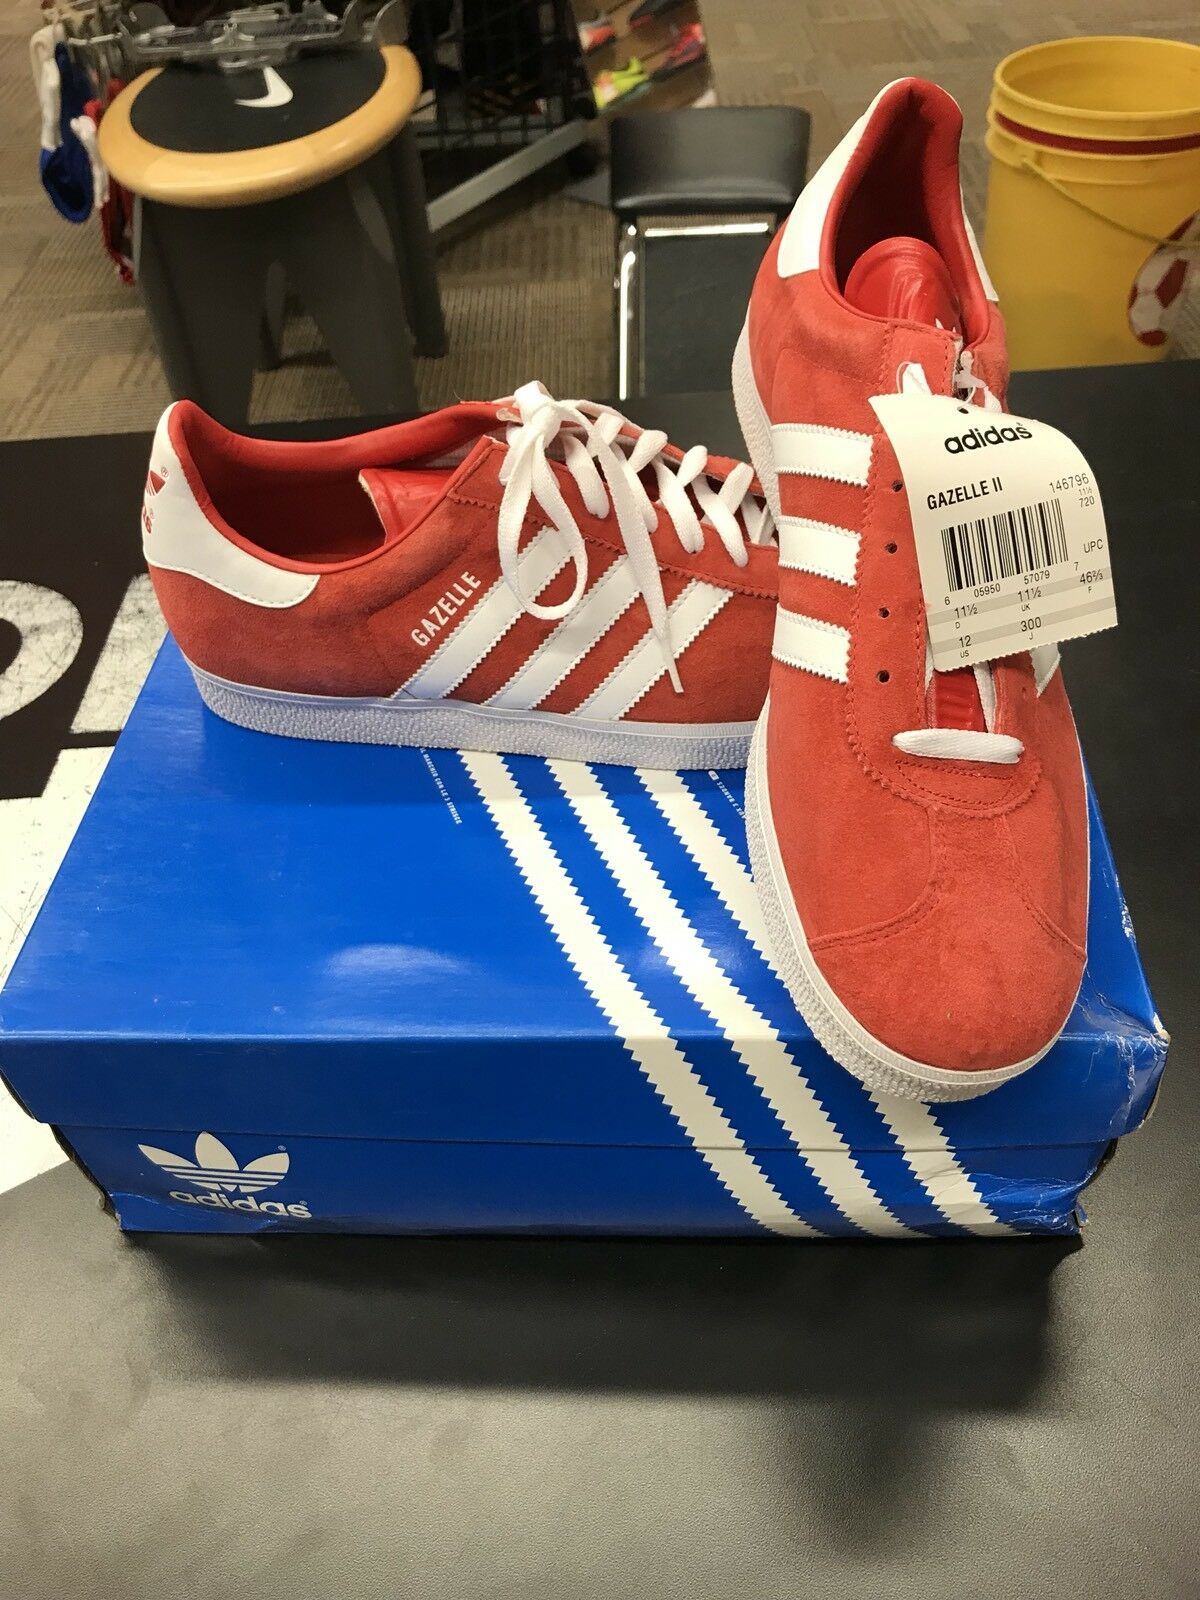 Adidas Men's Gazelle II Shoes - Red & White Cheap women's shoes women's shoes